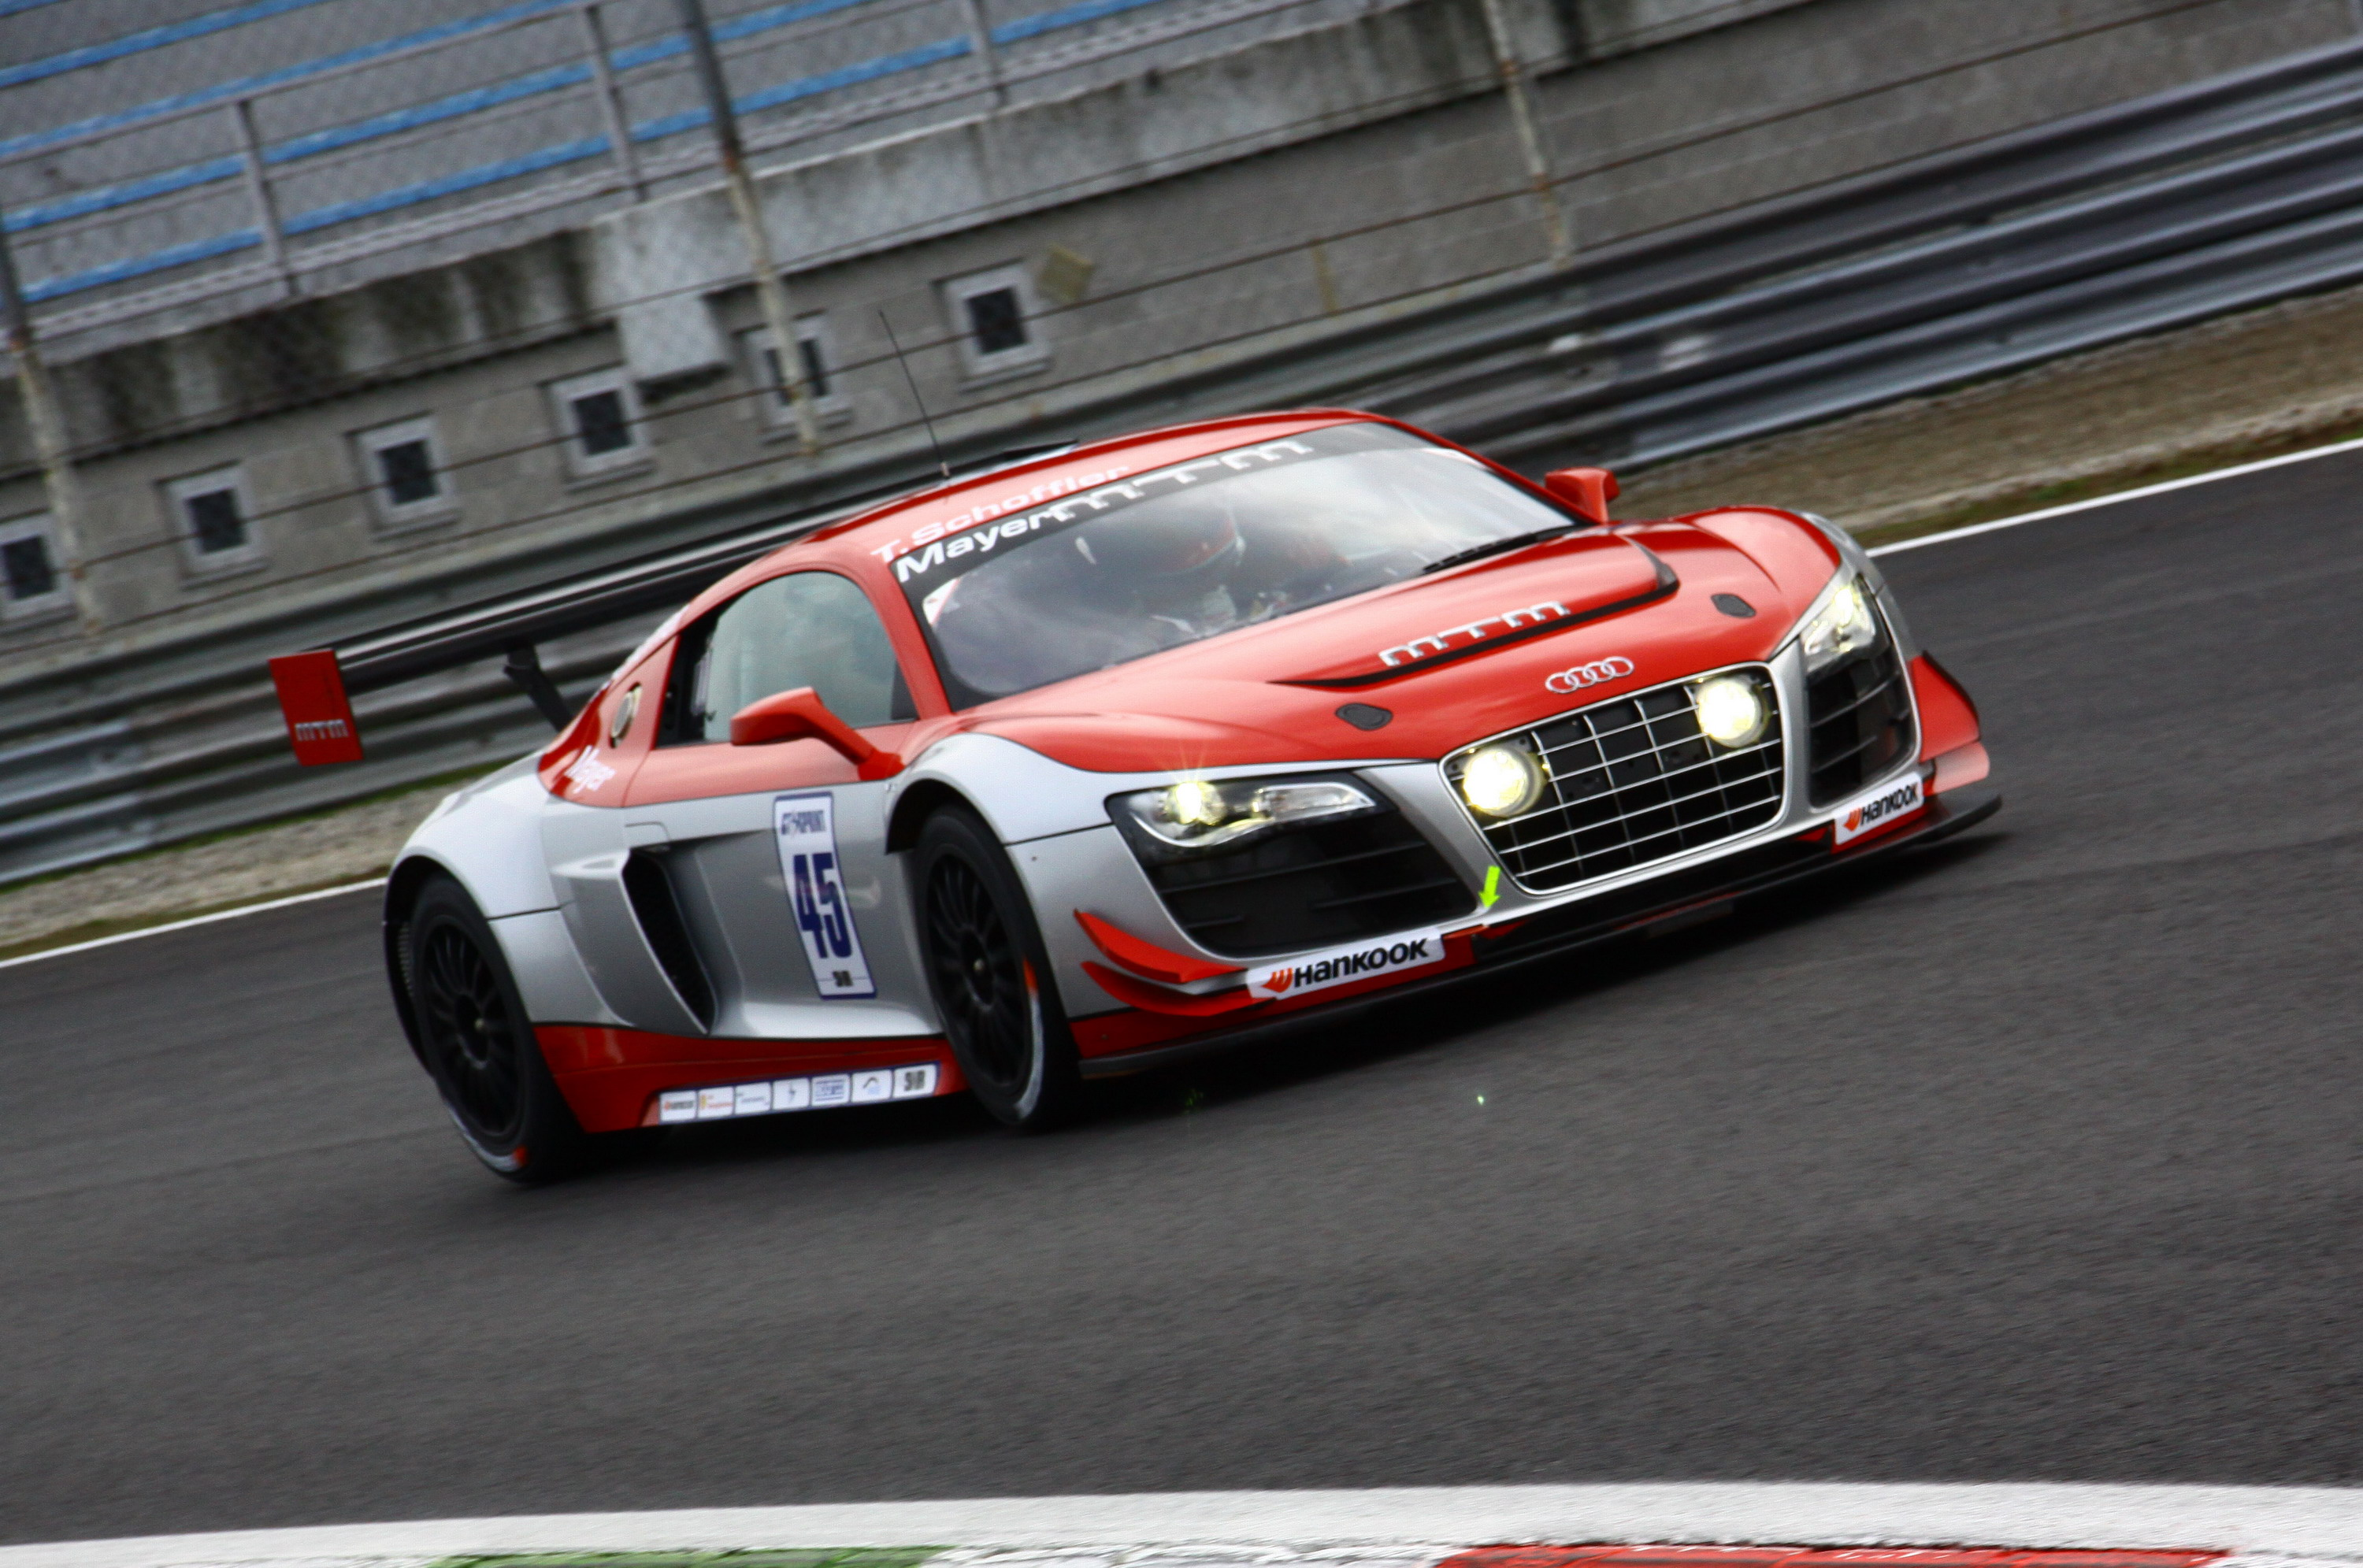 mtm r8 is the fastest car at 2013 tuner grand prix pictures photos wallpapers top speed. Black Bedroom Furniture Sets. Home Design Ideas